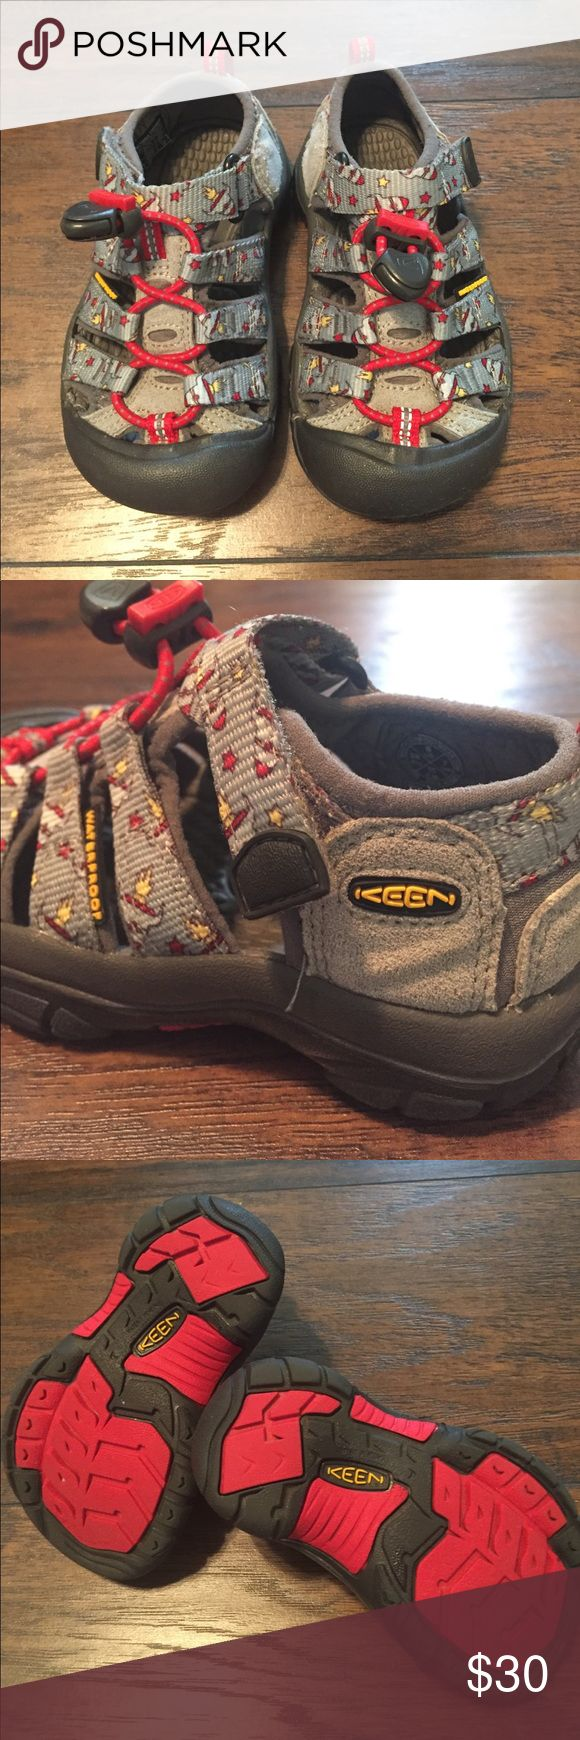 KEEN Kids Water Shoe {8} 💙 Excellent condition KEEN watershoes, toddler boy size 8. They are grey and red with rockets. They look brand new! 🚀 Keen Shoes Water Shoes